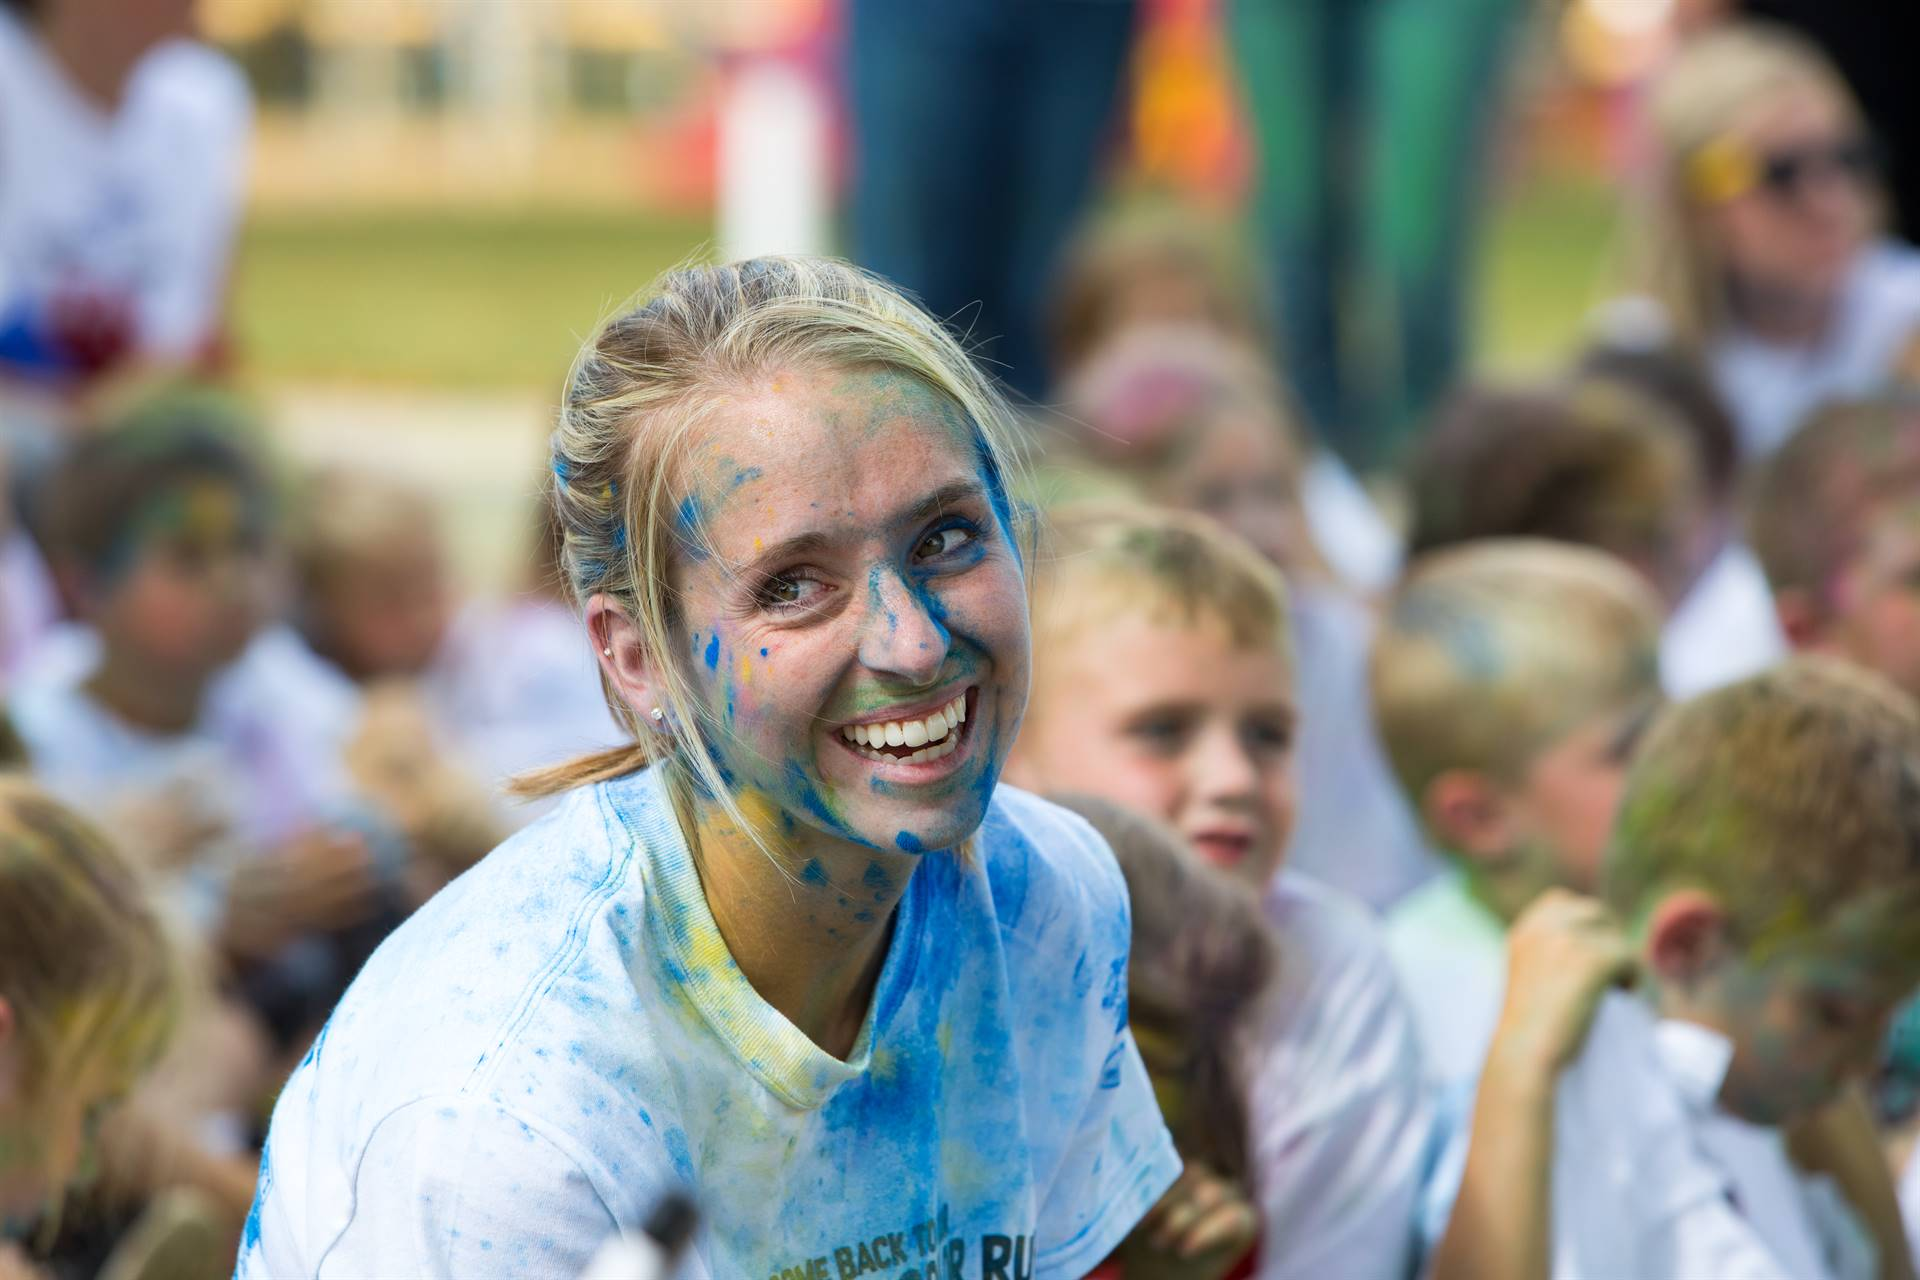 Teacher smiling after color run